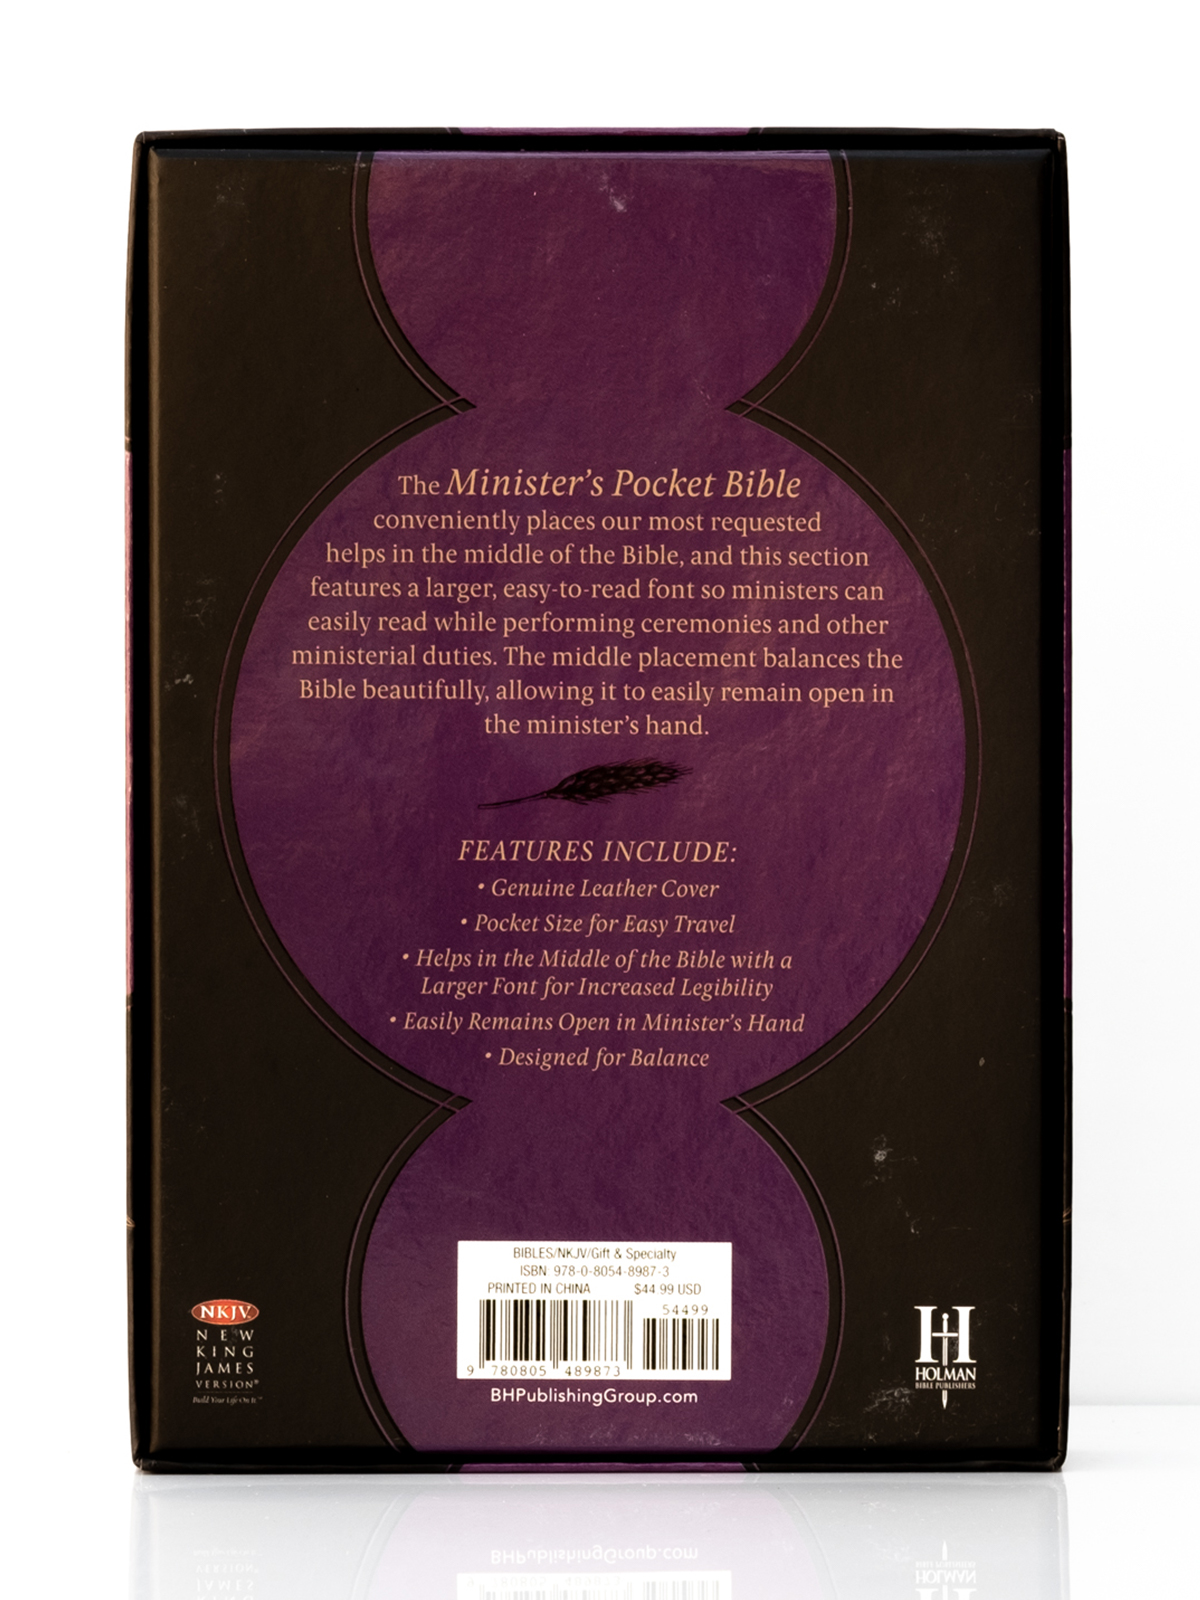 NKJV Ministers Pocket Bible Back Cover